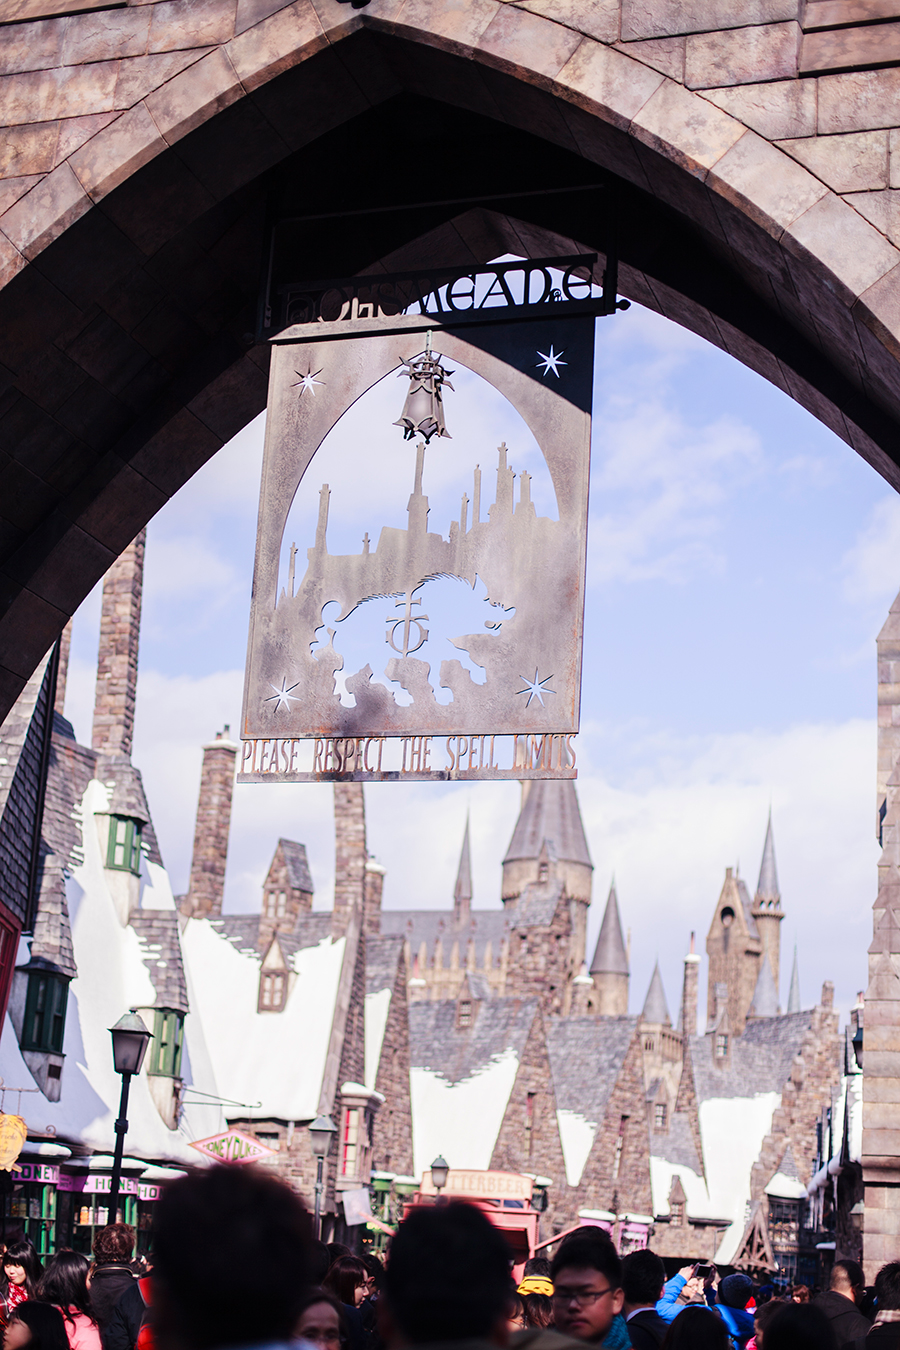 Entrance to The Wizarding World of Harry Potter at Universal Studios Japan, Osaka.